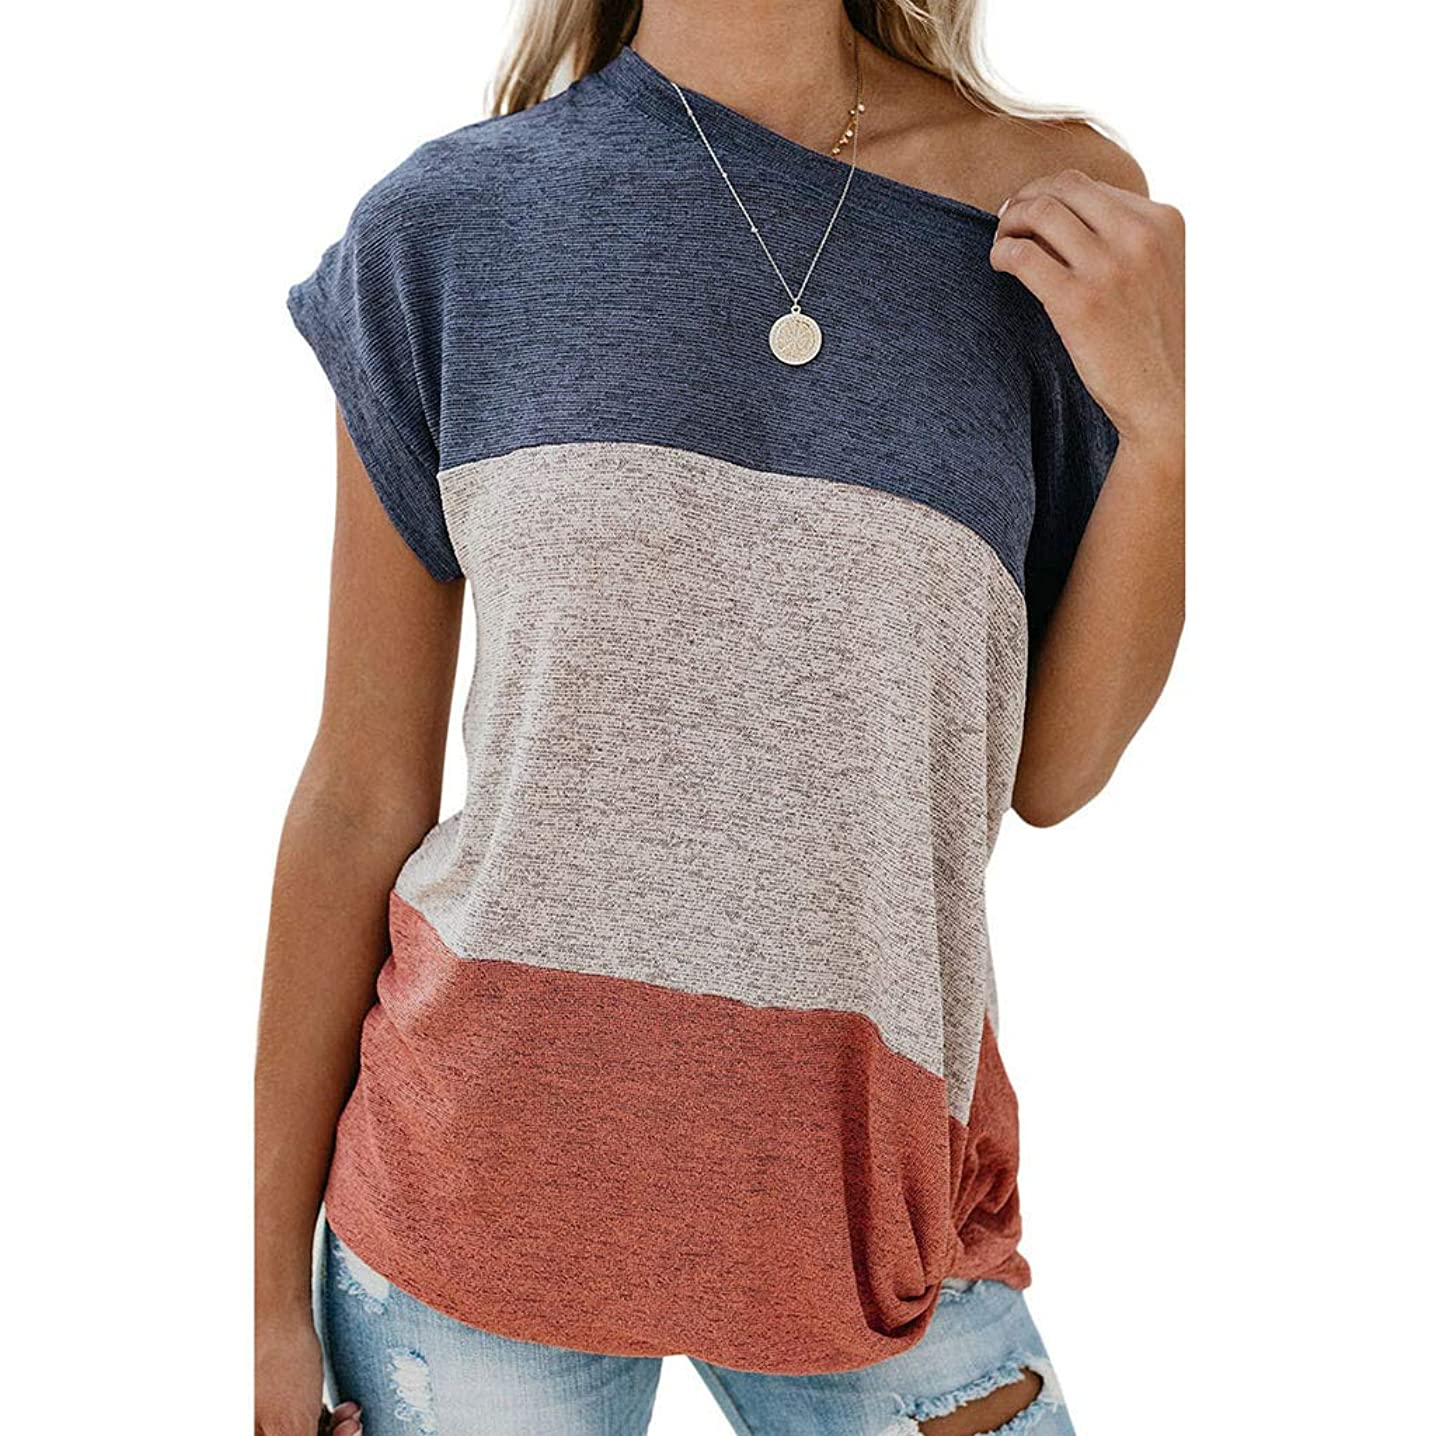 Women's Solid Color Stitching Tops Tie Front Knot Blouse Off Shoulder Tunic T-Shirt Short Sleeve Tees